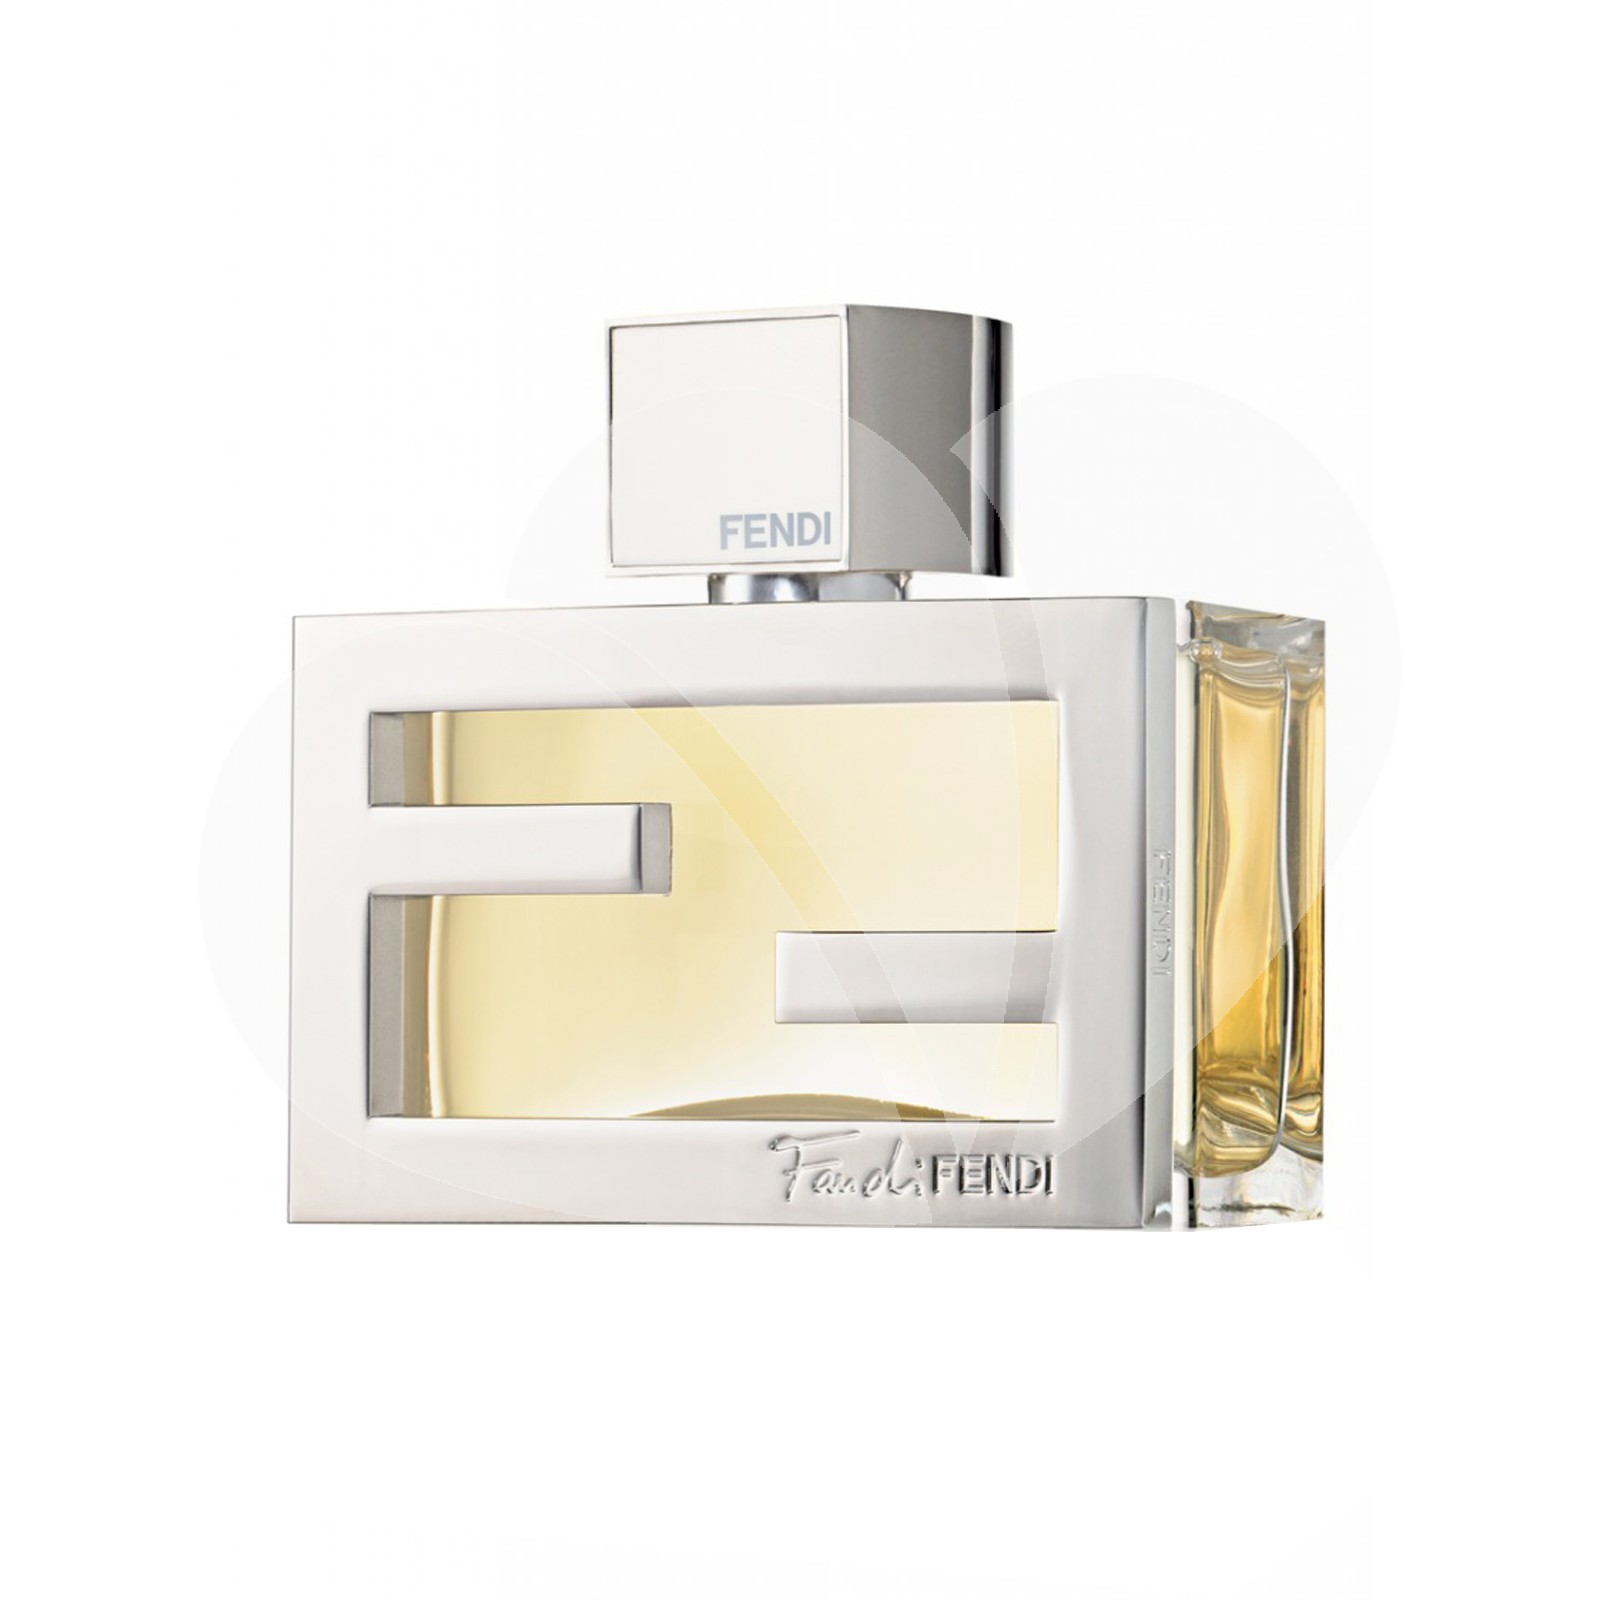 Image of Fendi Fan di Fendi - Eau de Toilette 75 ml